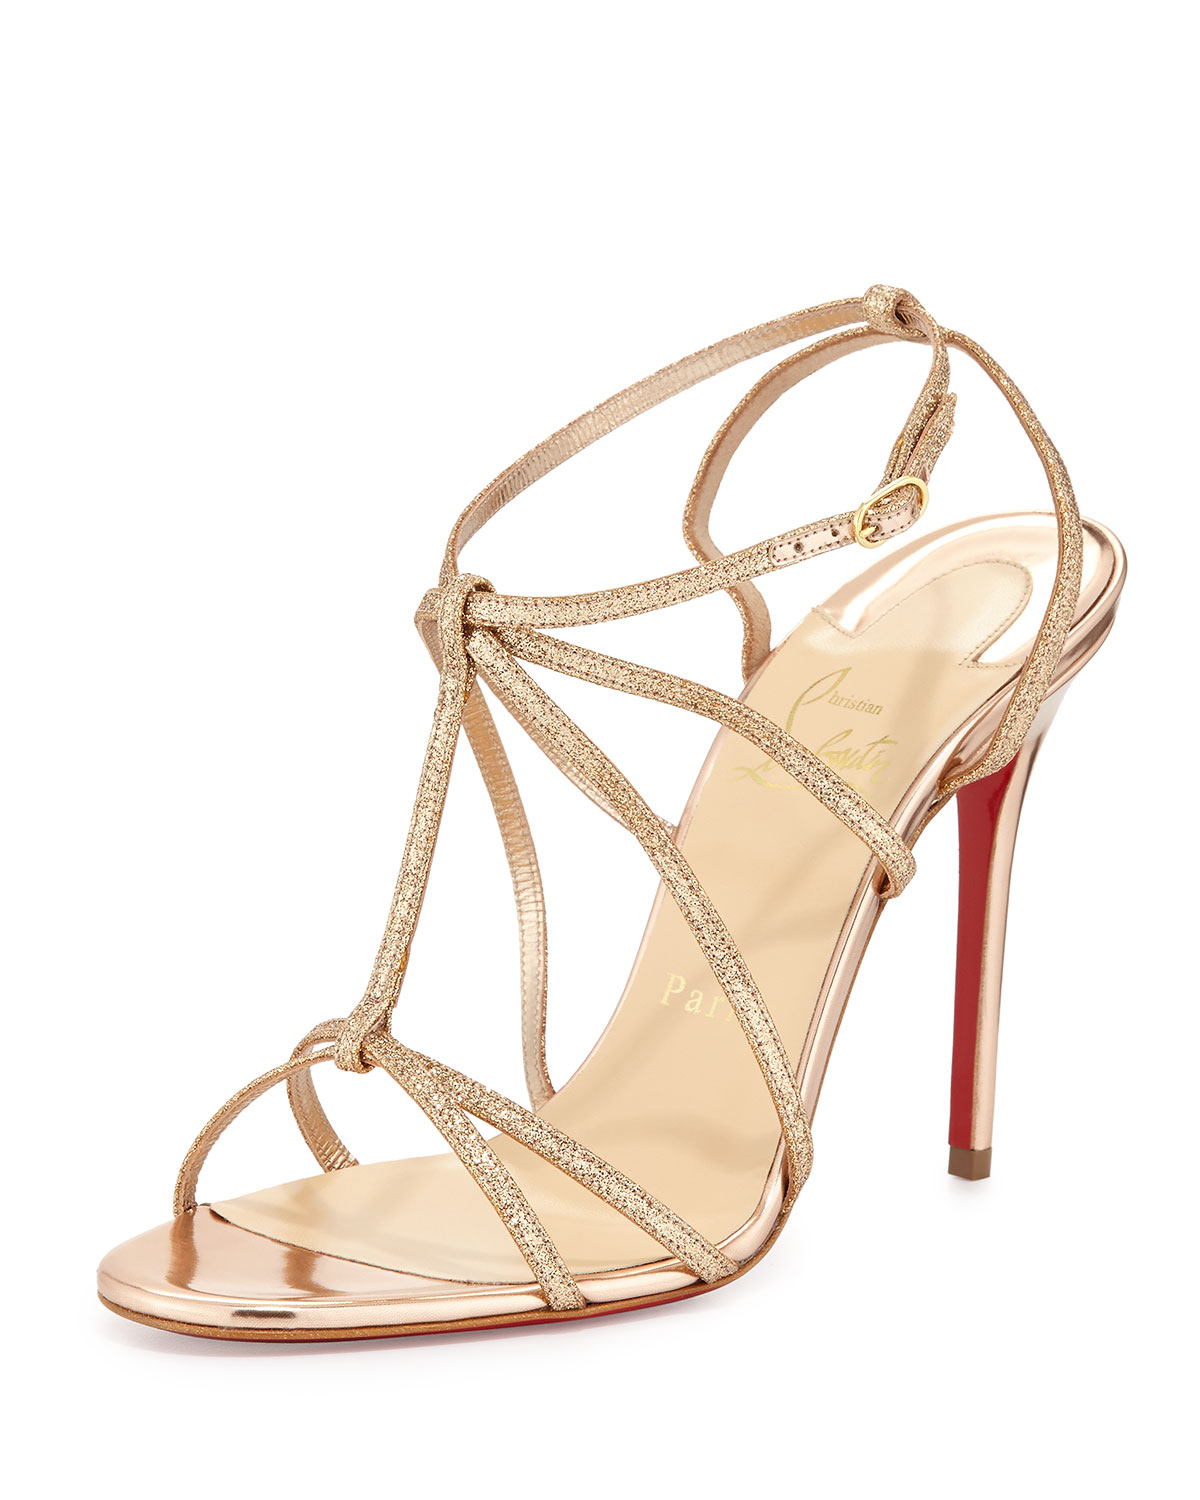 christian louboutin multi strap sandals - Bbridges